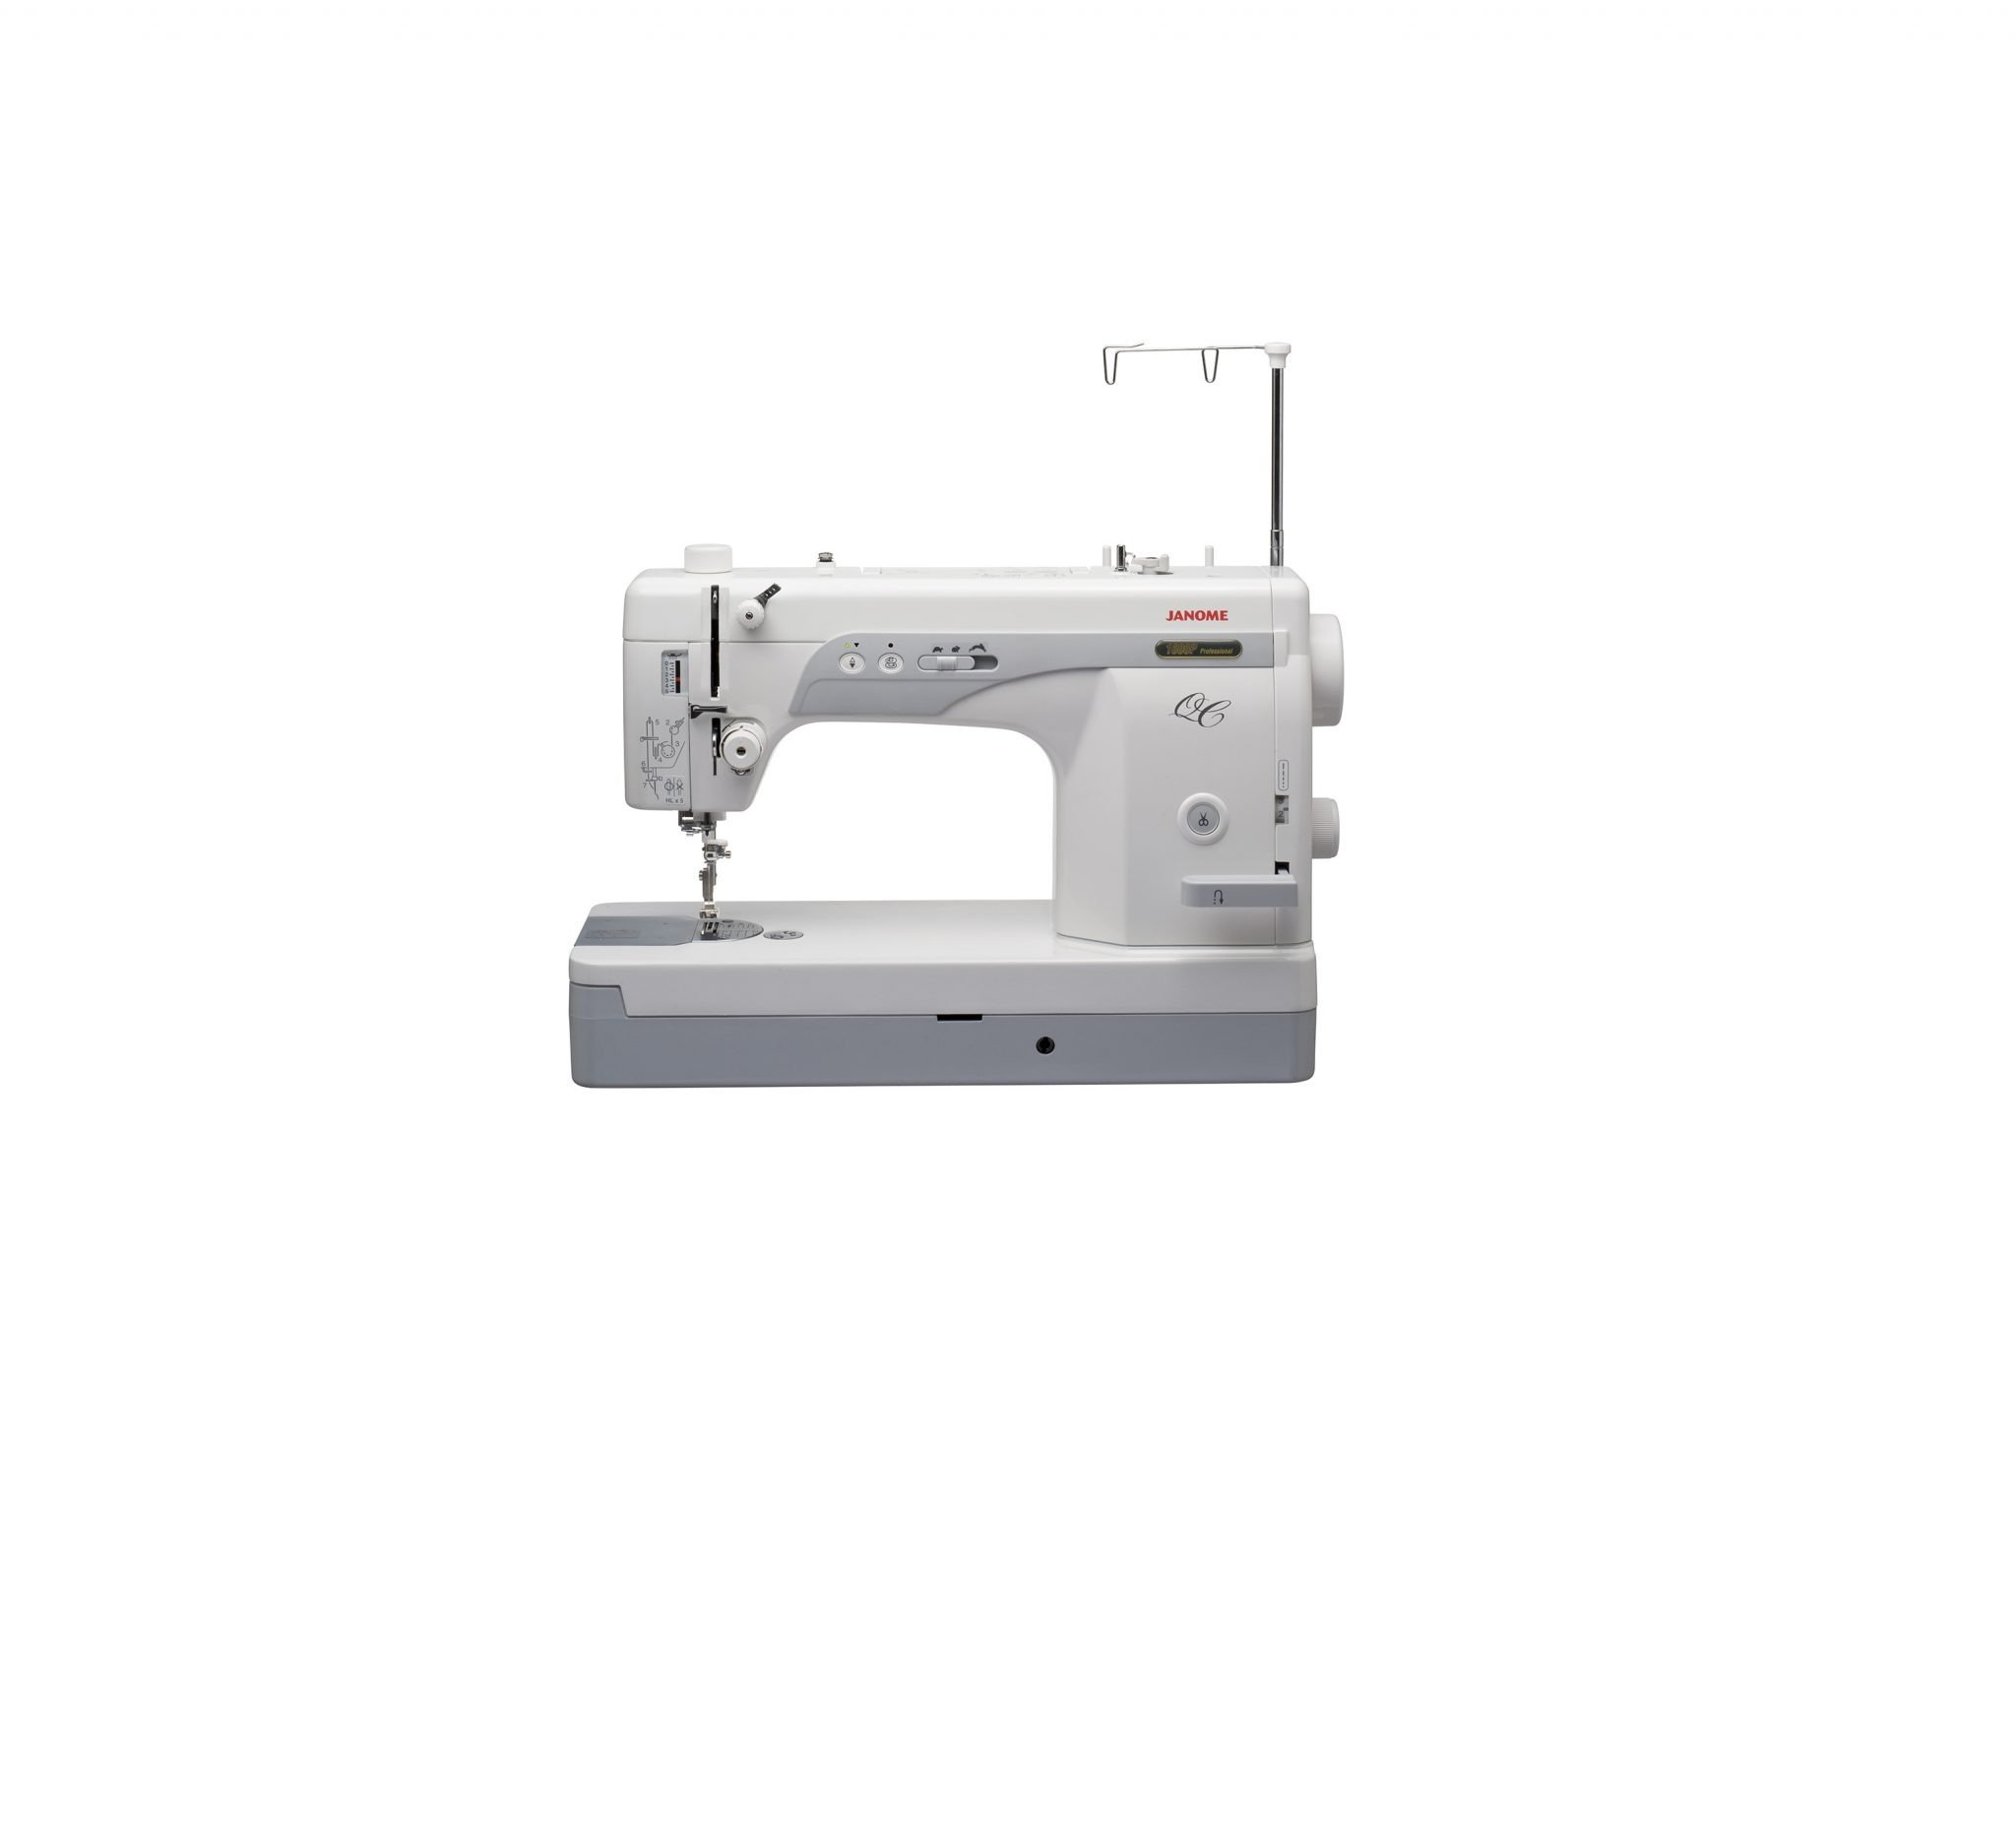 1600P-QC Sewing and Quilting Machine • Blackmore and Roy, Perth WA